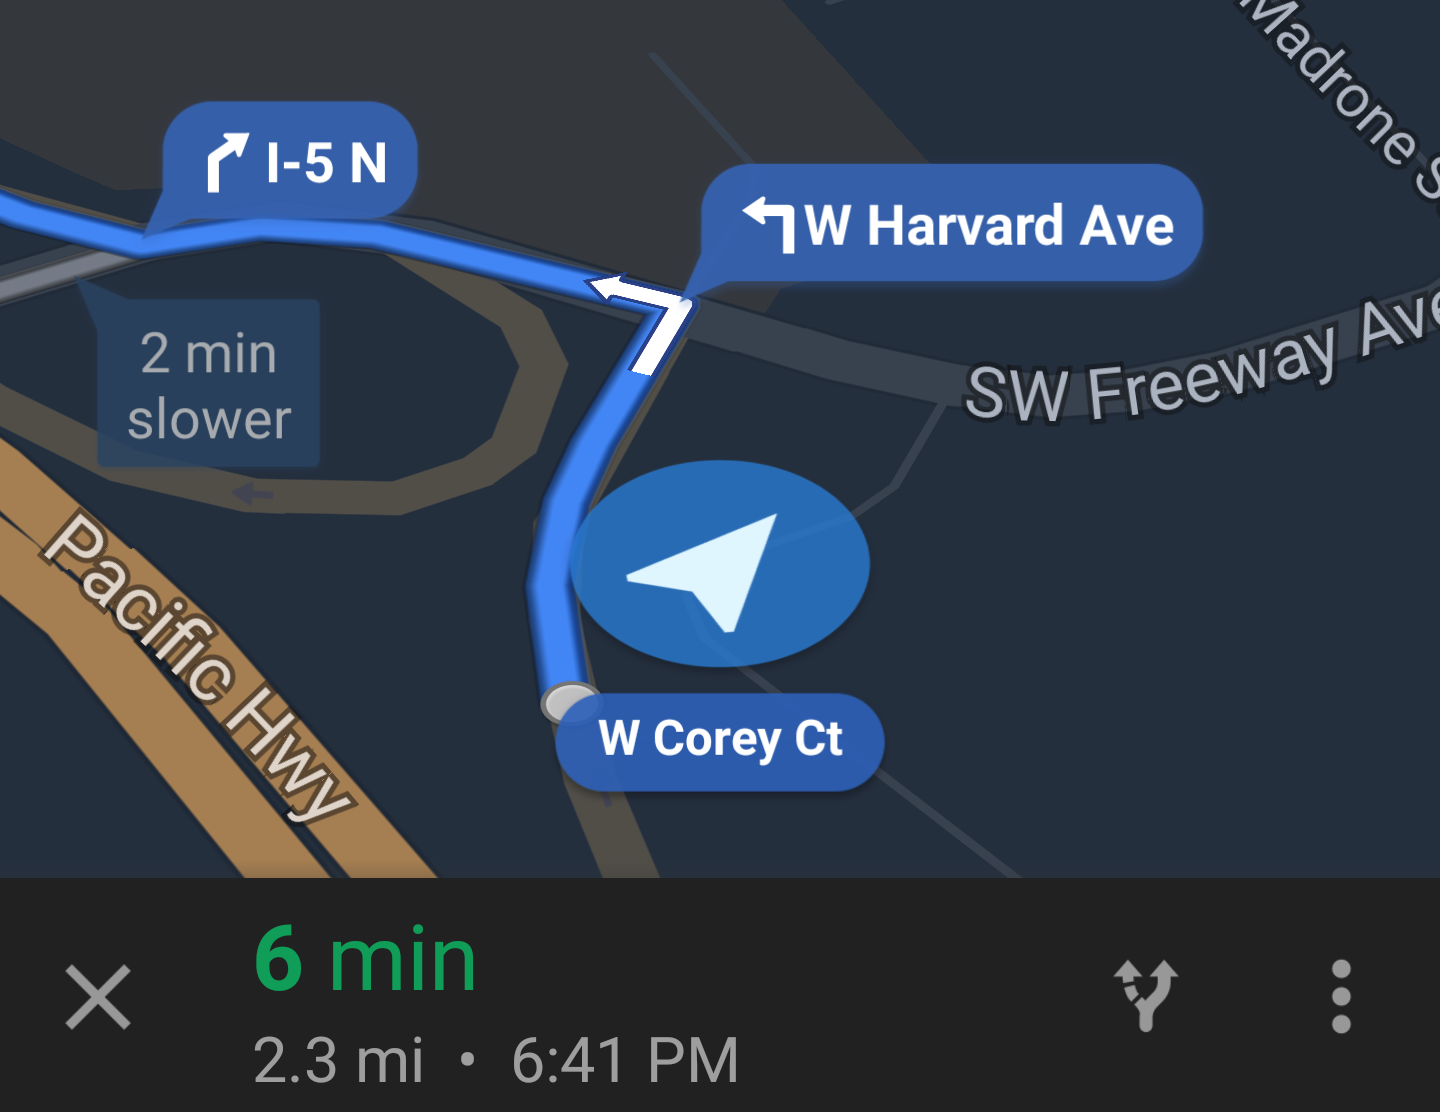 Google Maps Navigation Bubbles Containing Street And Exit ... on advance map, valhalla rising map, shore parkway map, lightning in a bottle map, guide map,